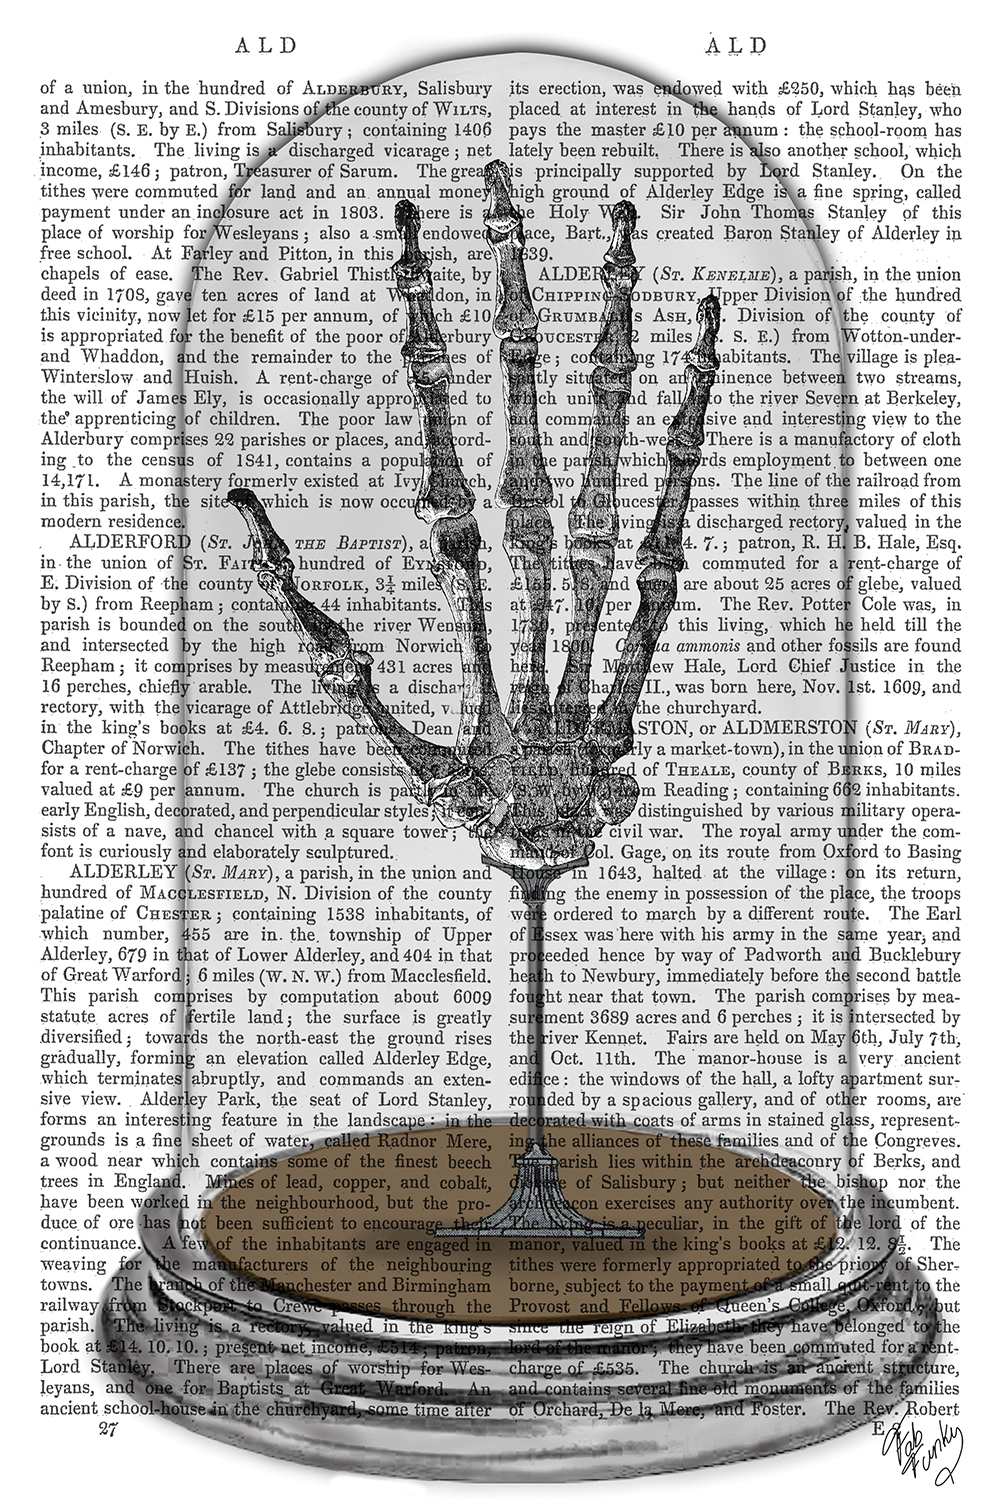 Skeleton hand in a bell jar over a text background